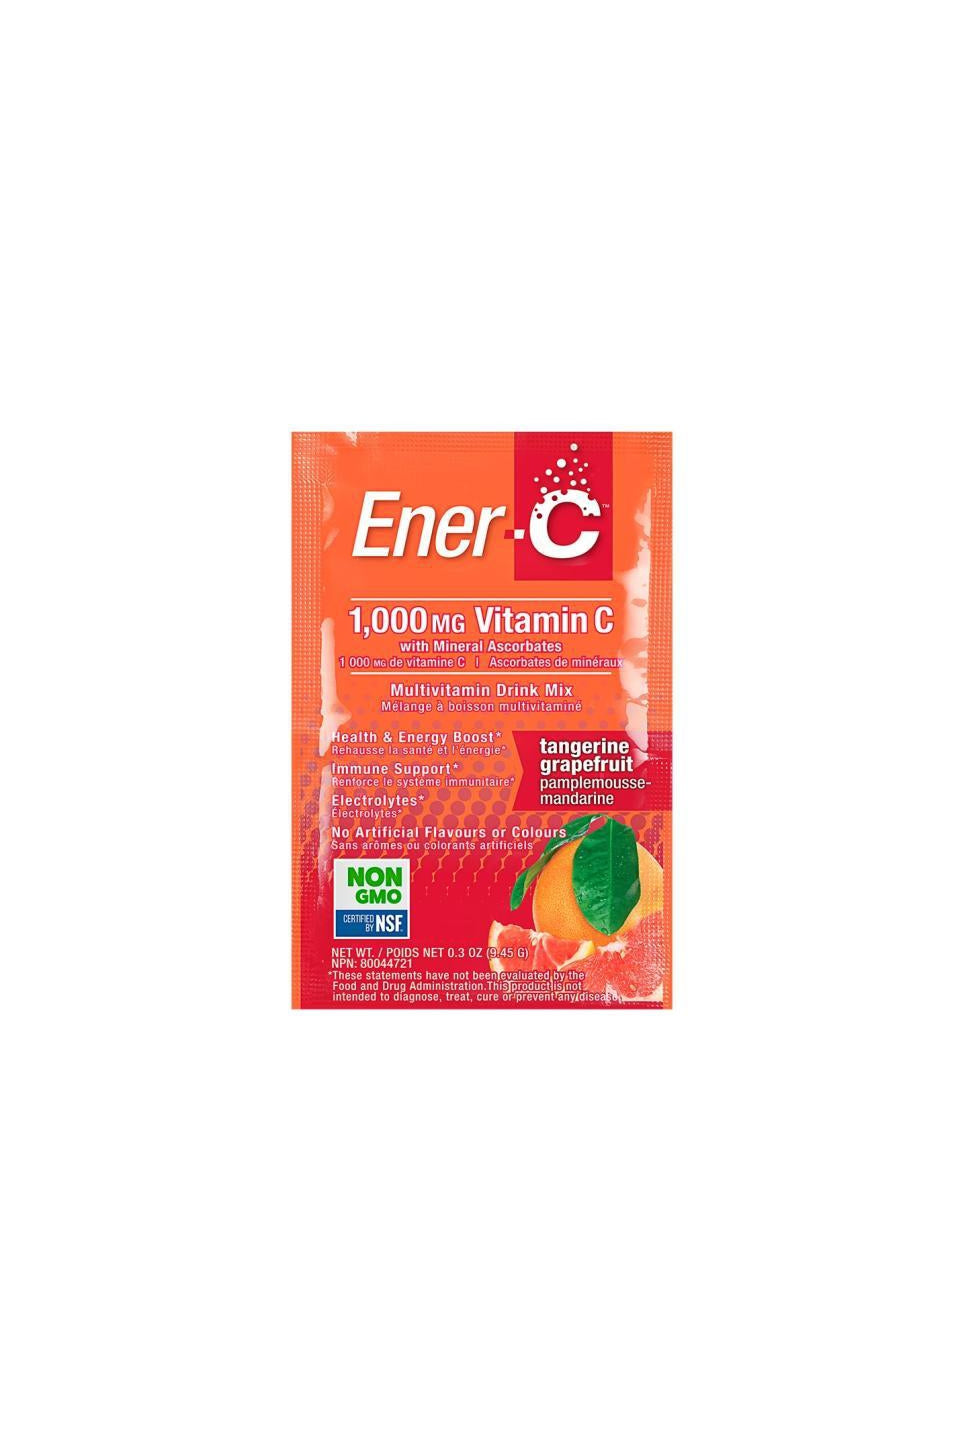 Ener-C Tangerine Grapefruit Multivitamin Drink Mix - 1,000mg Vitamin C 1 Sachet